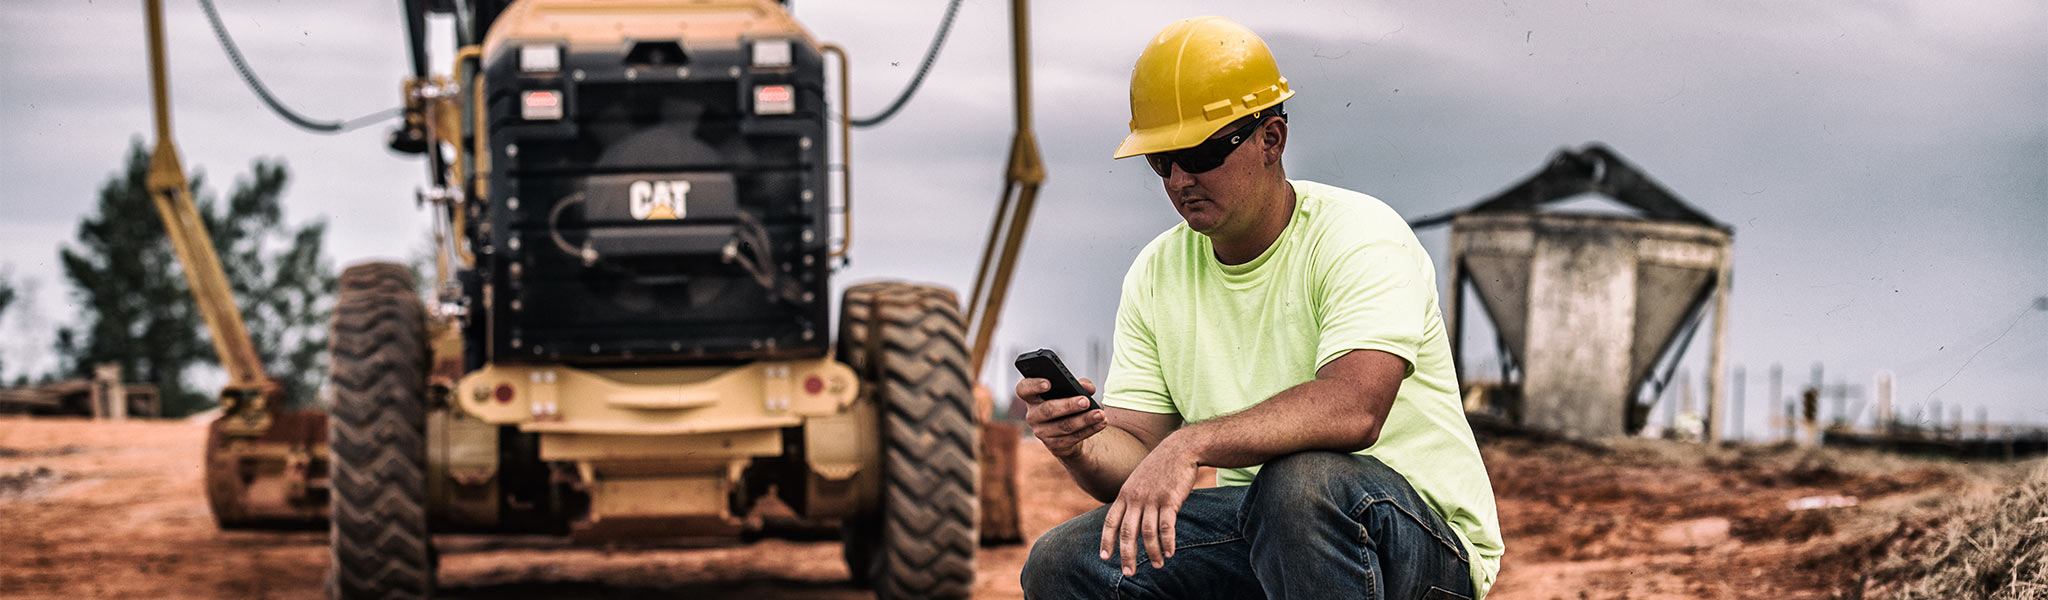 How could smartphones help your crew connect more effectively?